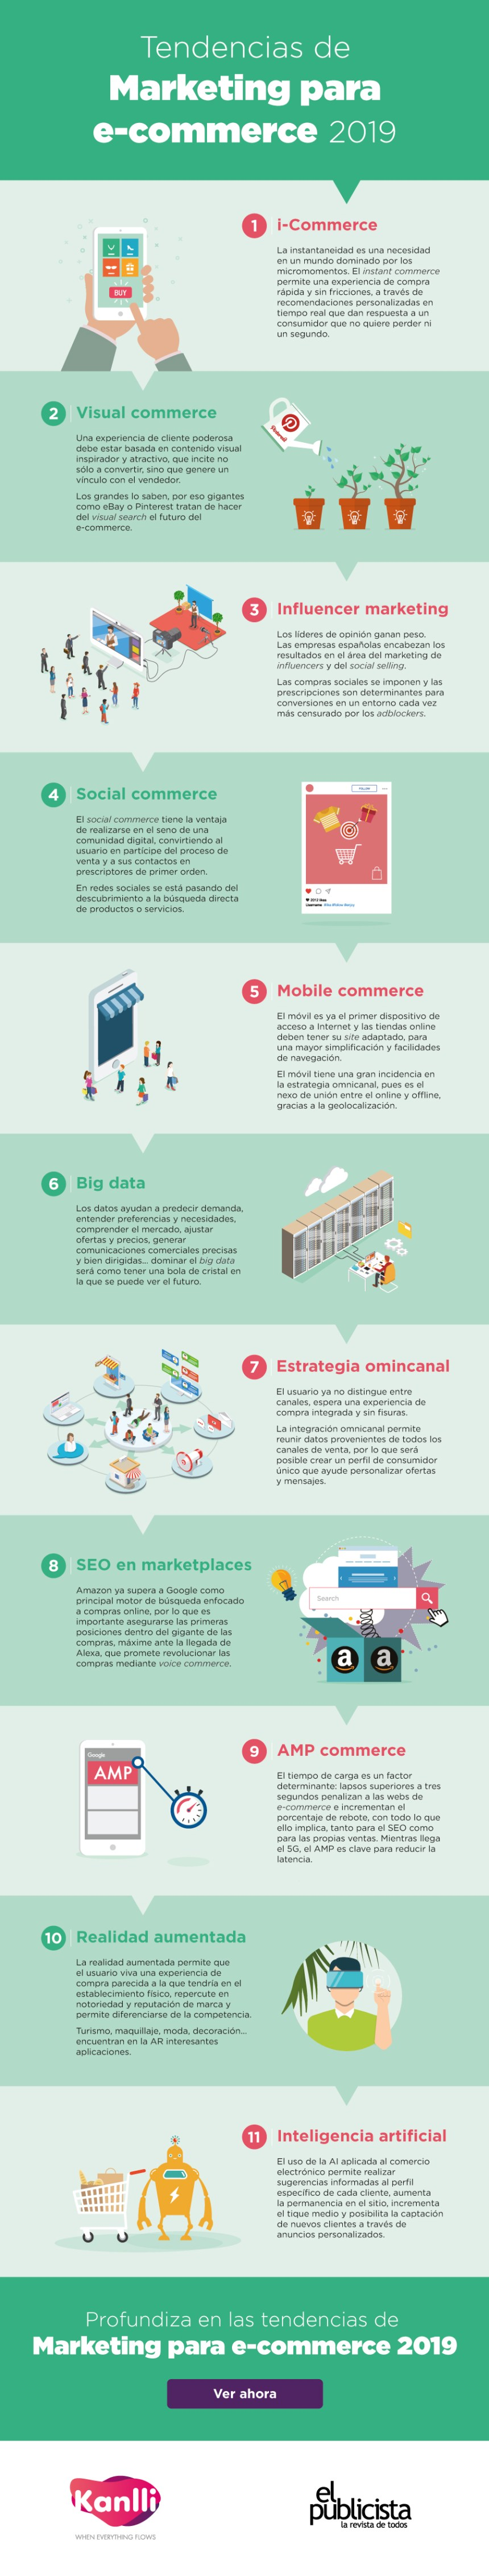 Tendencias de marketing para Comercio Electrónico